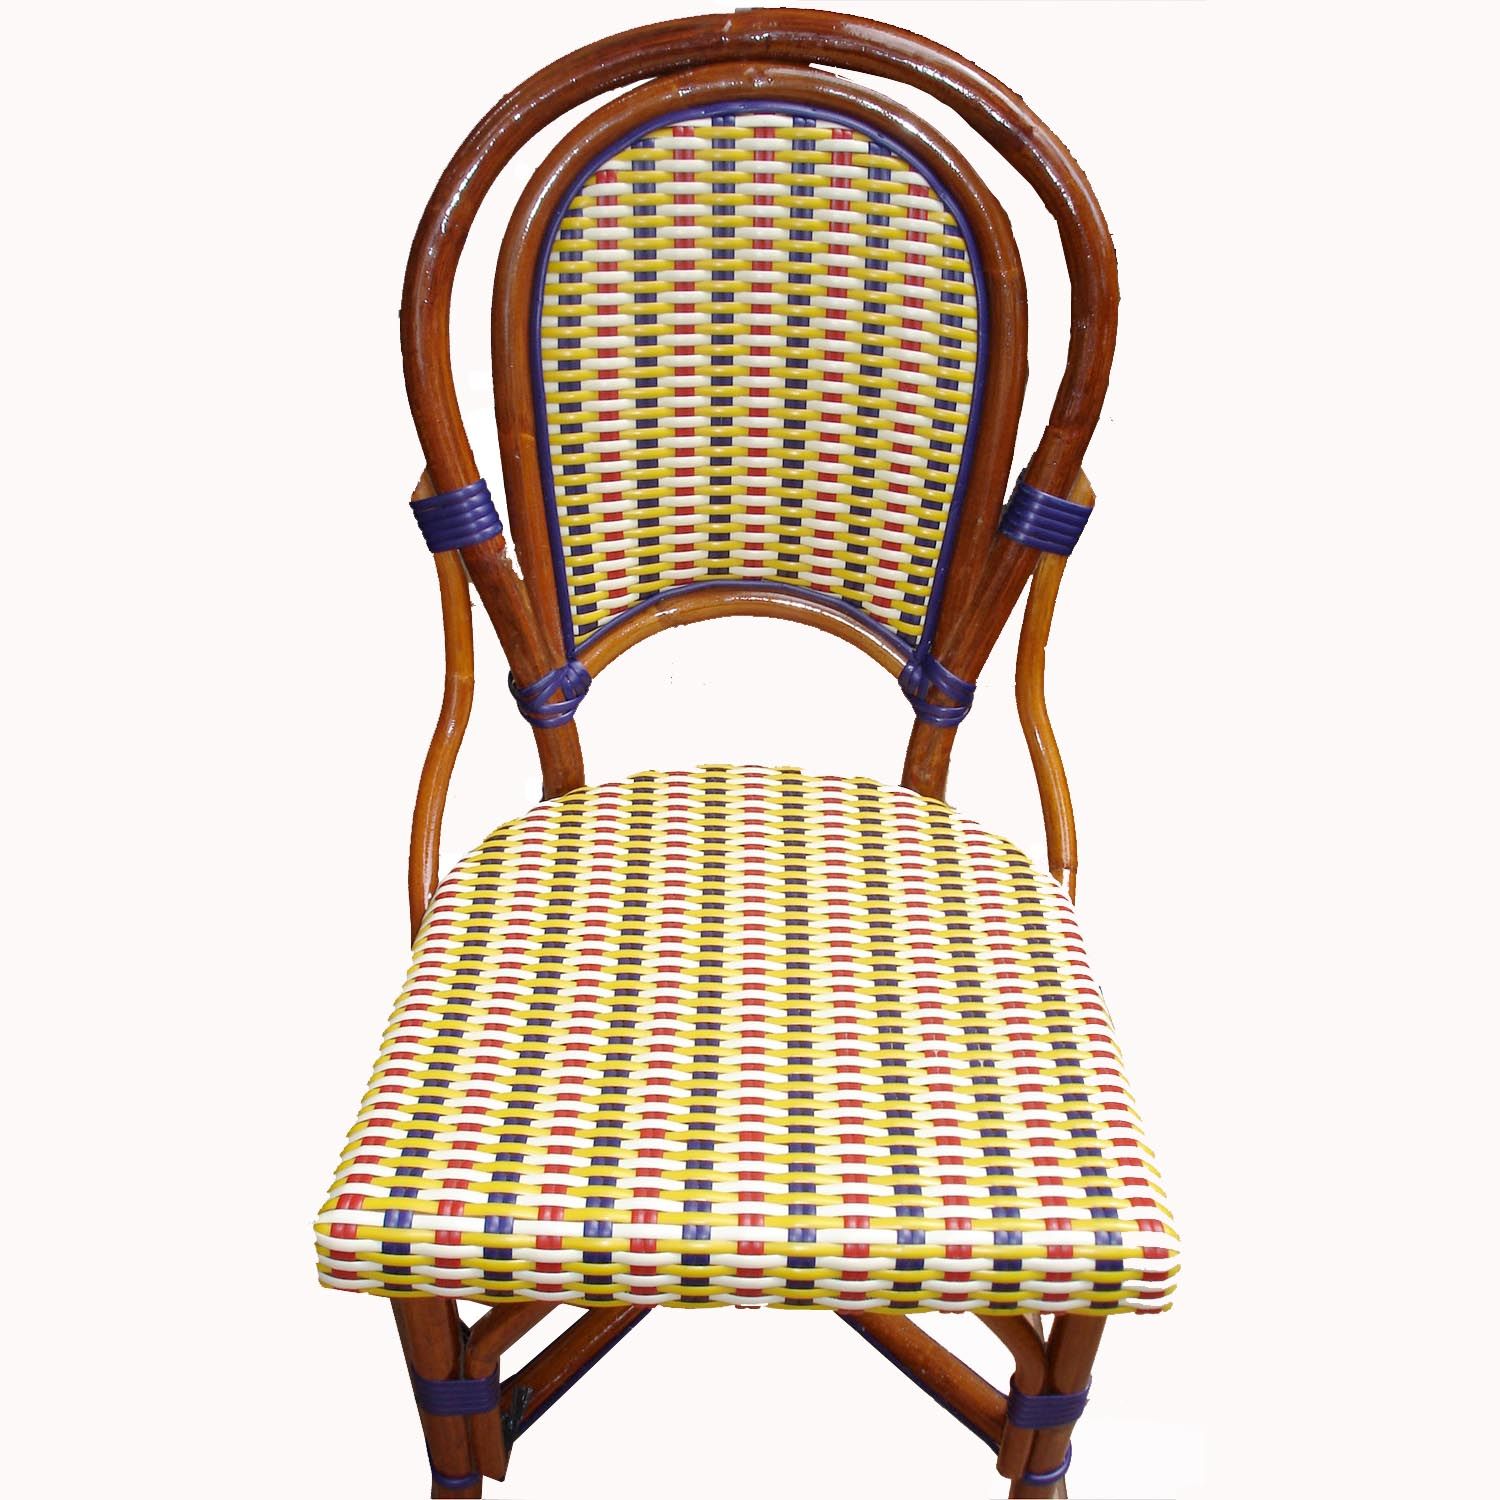 Marais Rattan Bistro Chair Ivory/Red/Blu/Yell